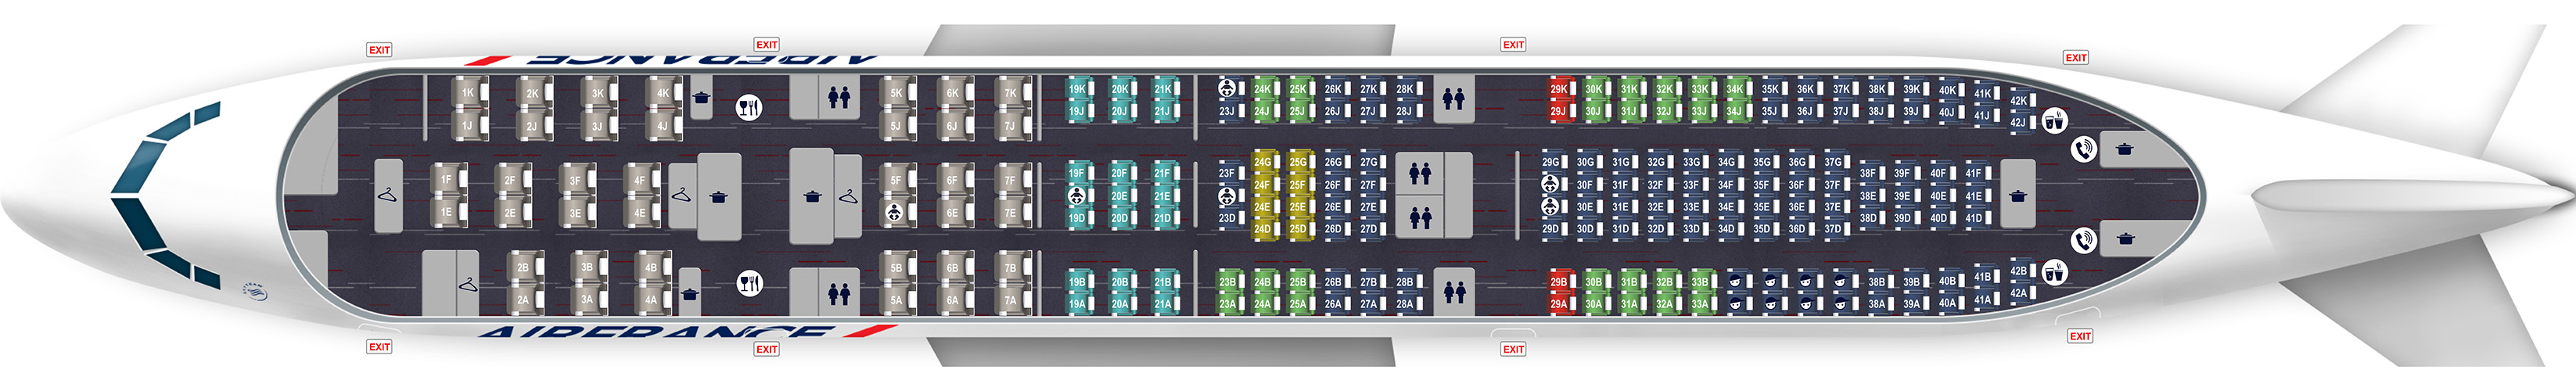 Plan a330 200 208 si ges for Plan de cabine boeing 777 200 air france